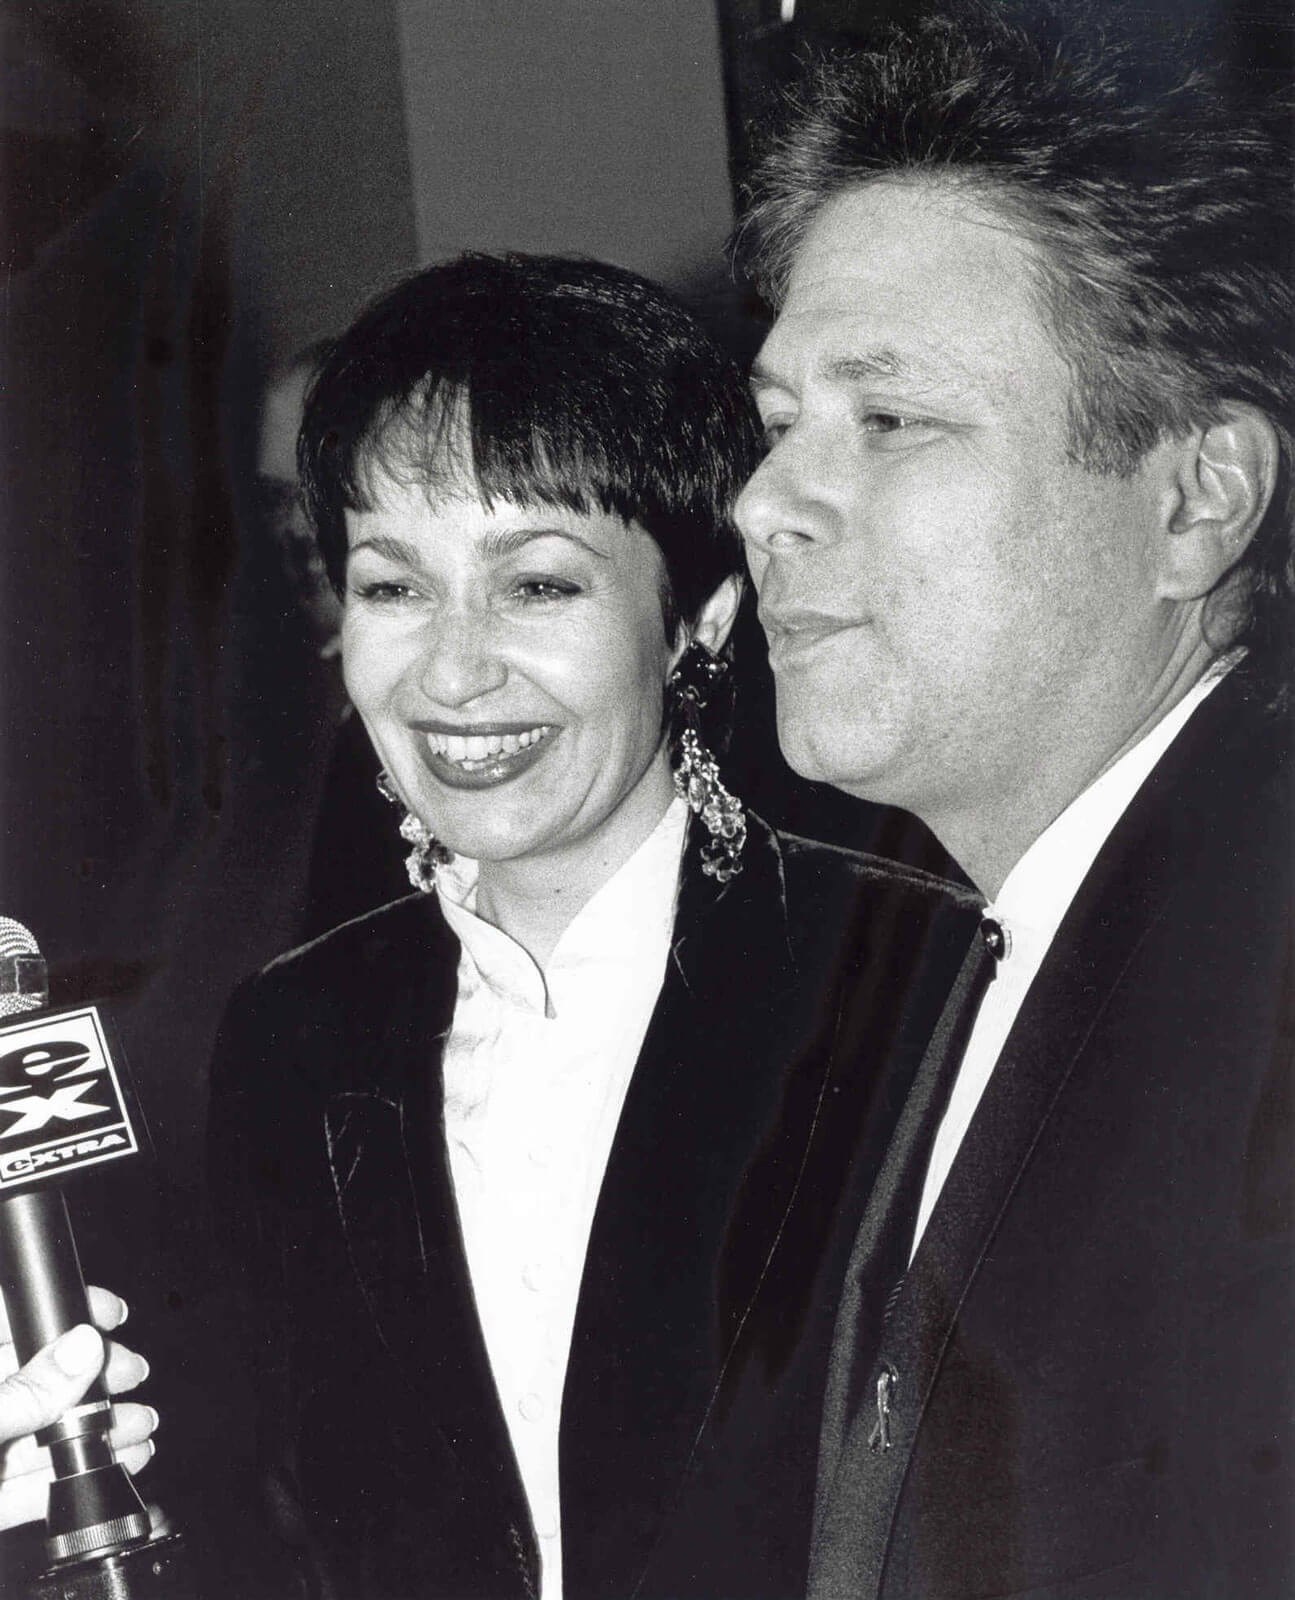 Lynn Ahrens and Alan Menken speaking to the press on opening night. Microphone from XTRA is in view.